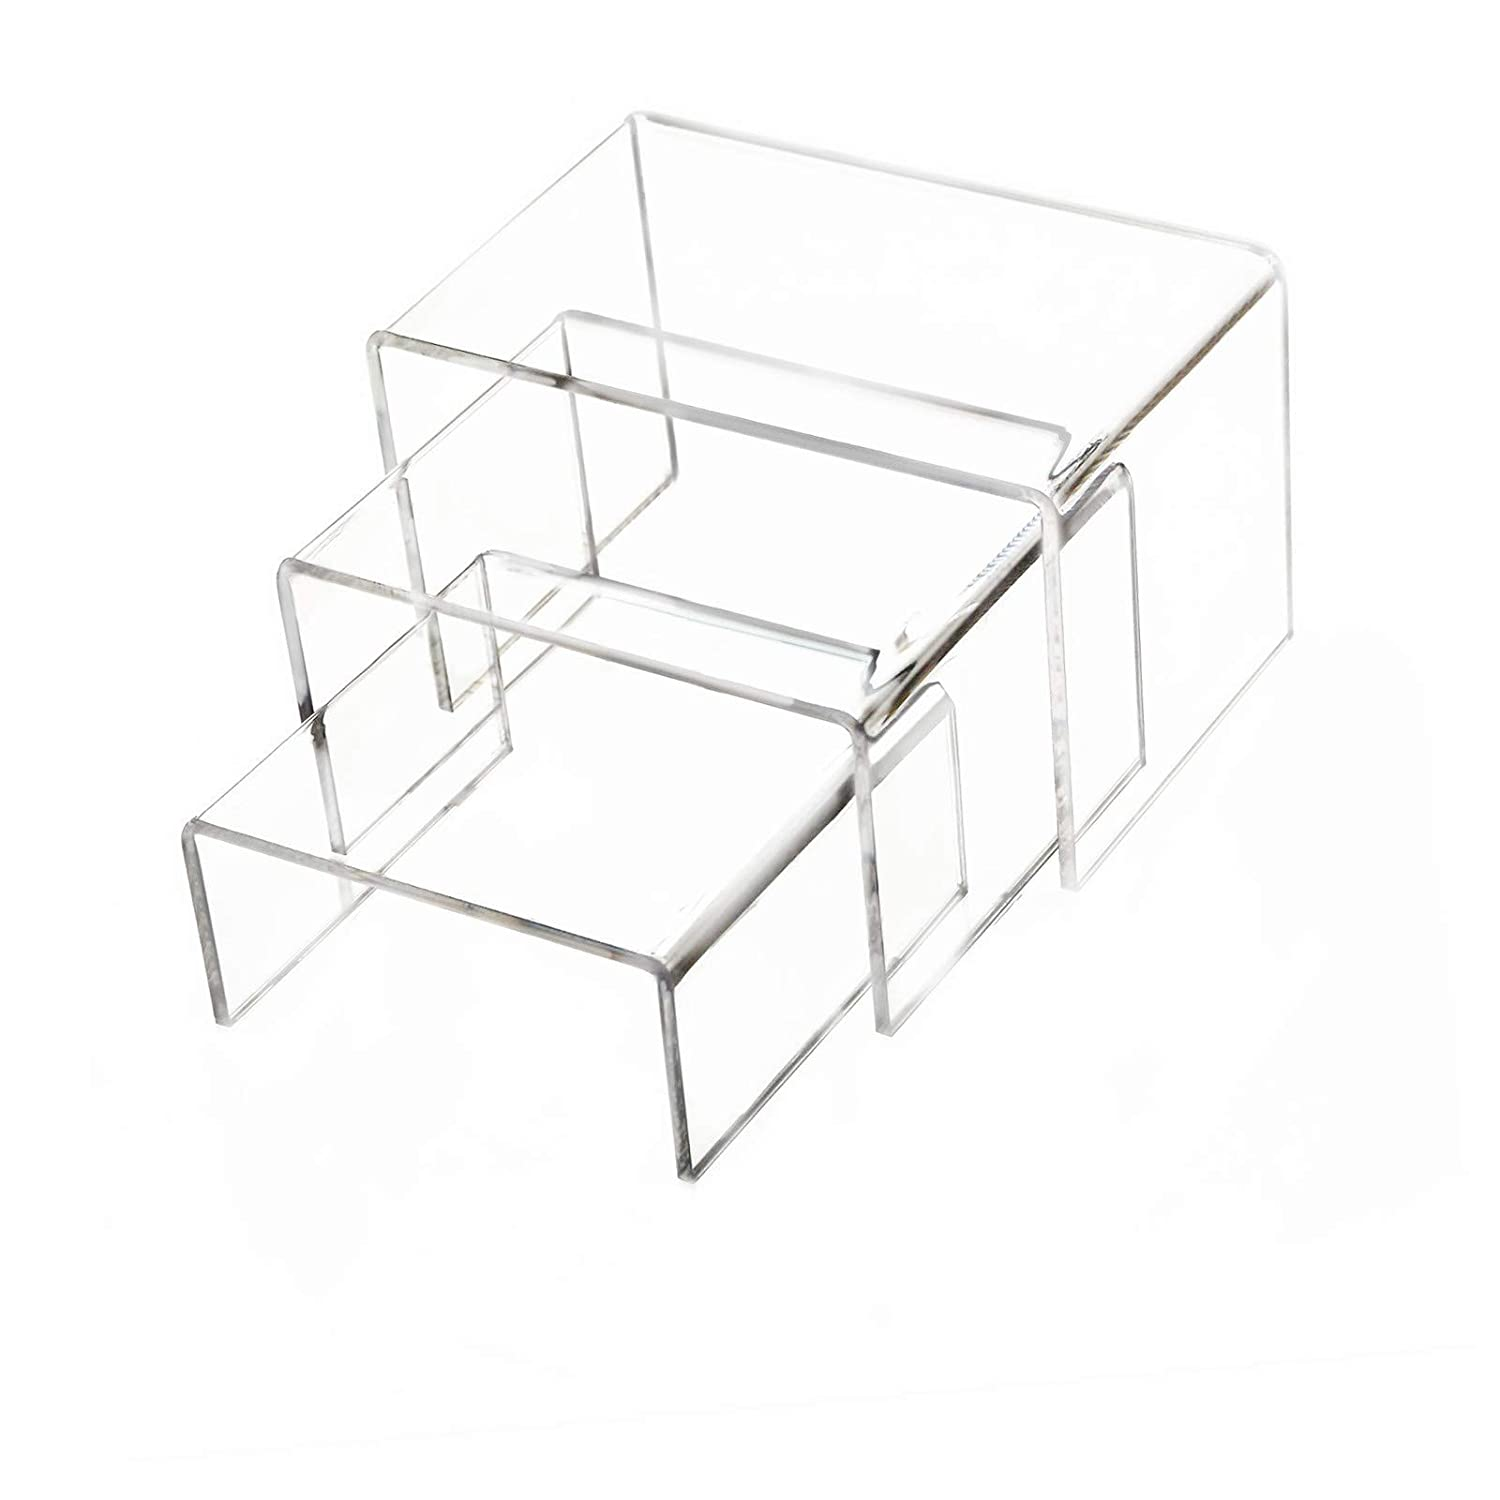 Clear Acrylic Display Risers, Showcase Shelf for Jewelry,Figures, Buffets and Cupcakes, 2 Sets